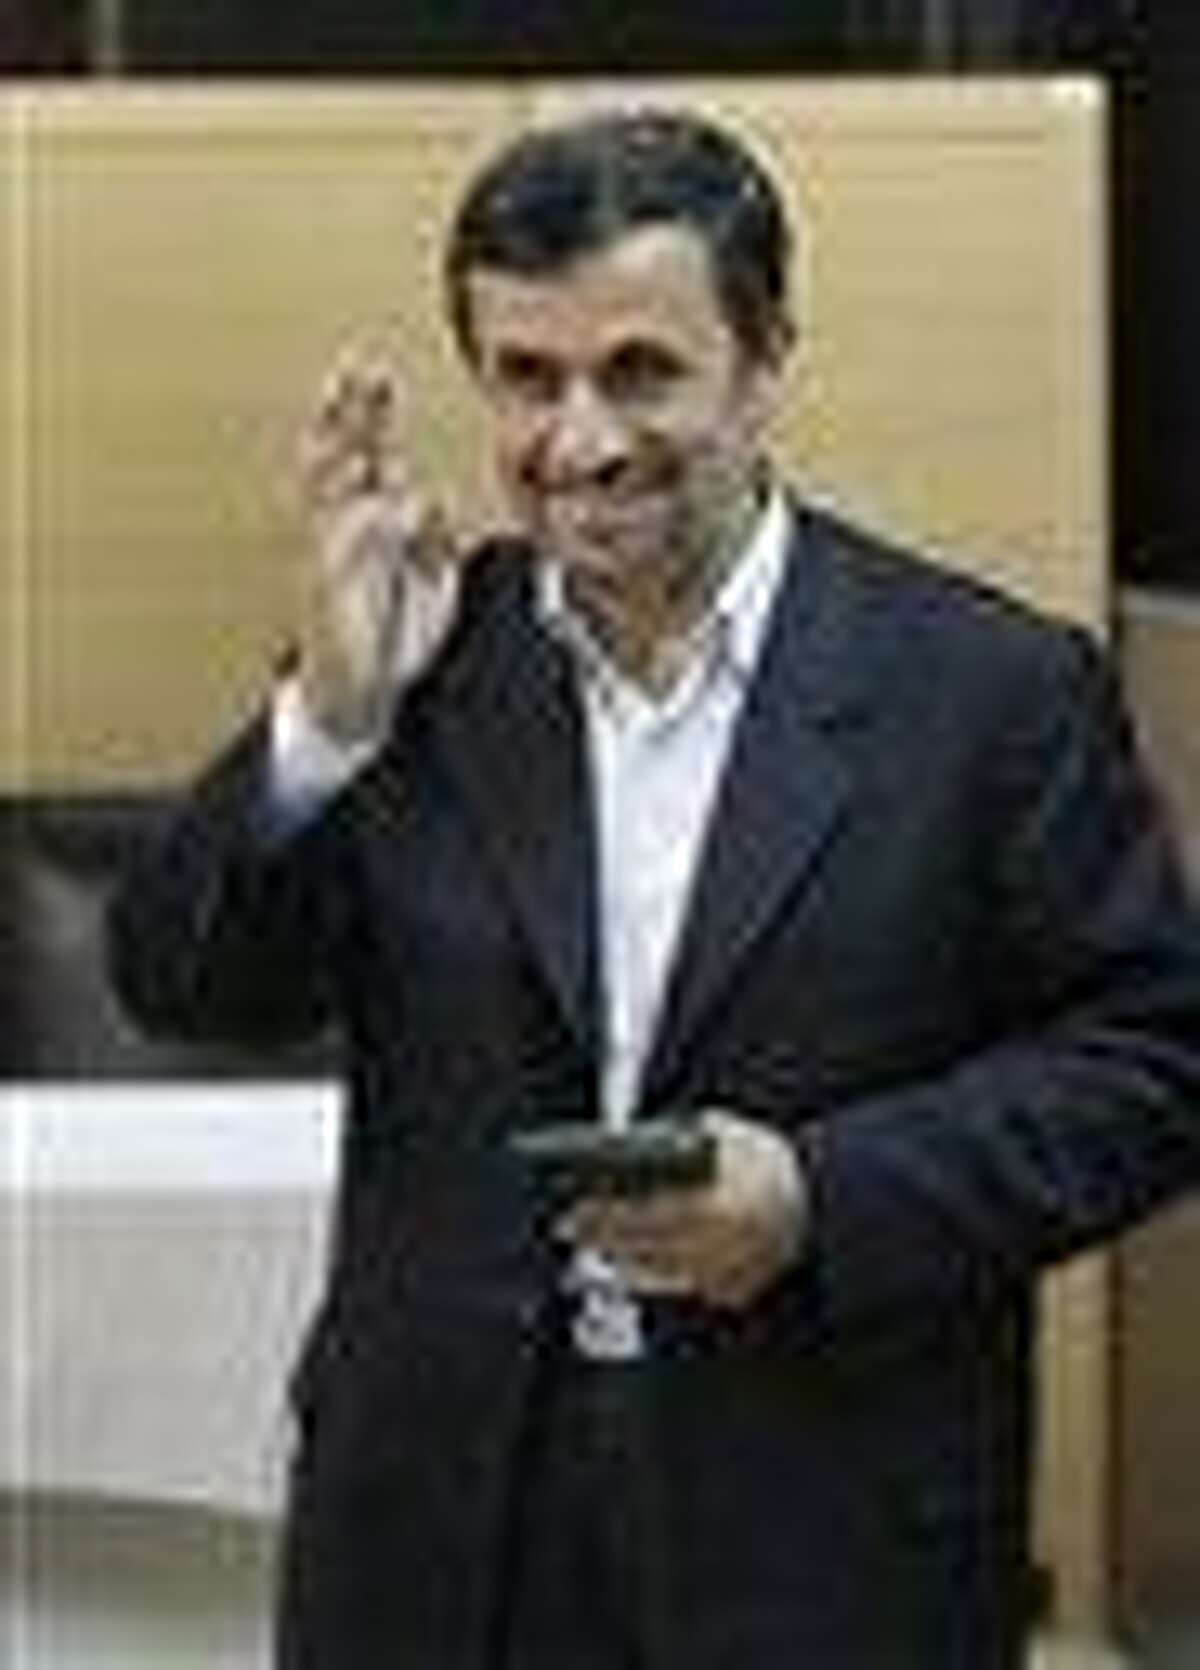 Iranian President Mahmoud Ahmadinejad waves to media after casting his vote for the parliamentary runoff elections at a polling station in Tehran, Iran, Friday. The Iranian leader says he wants to attend the Summer Olympics in London soon, but Britain doesn't want him.